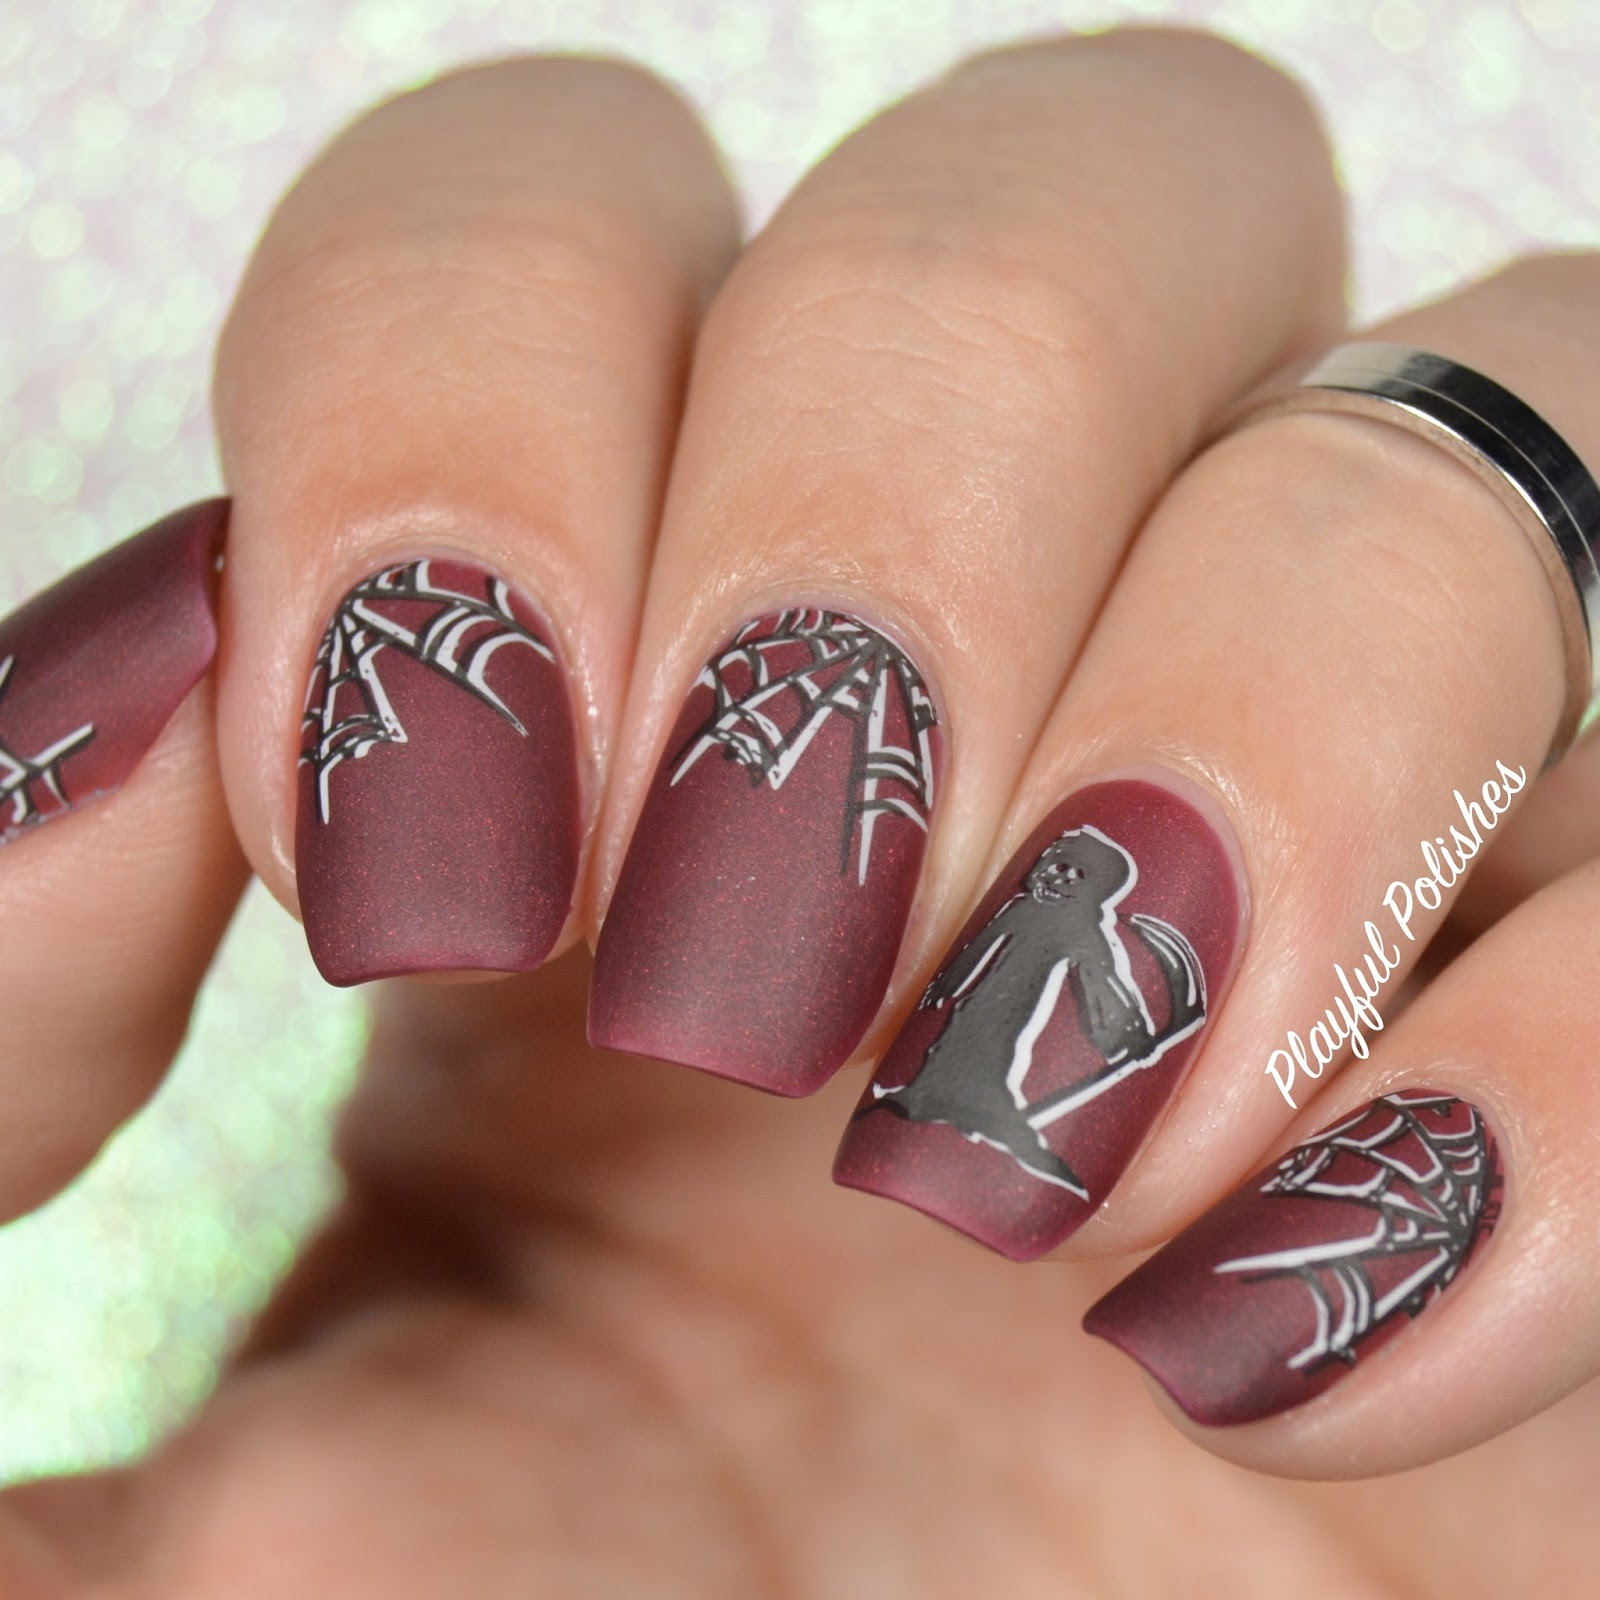 Playful Polishes: CUTE HALLOWEEN NAILS